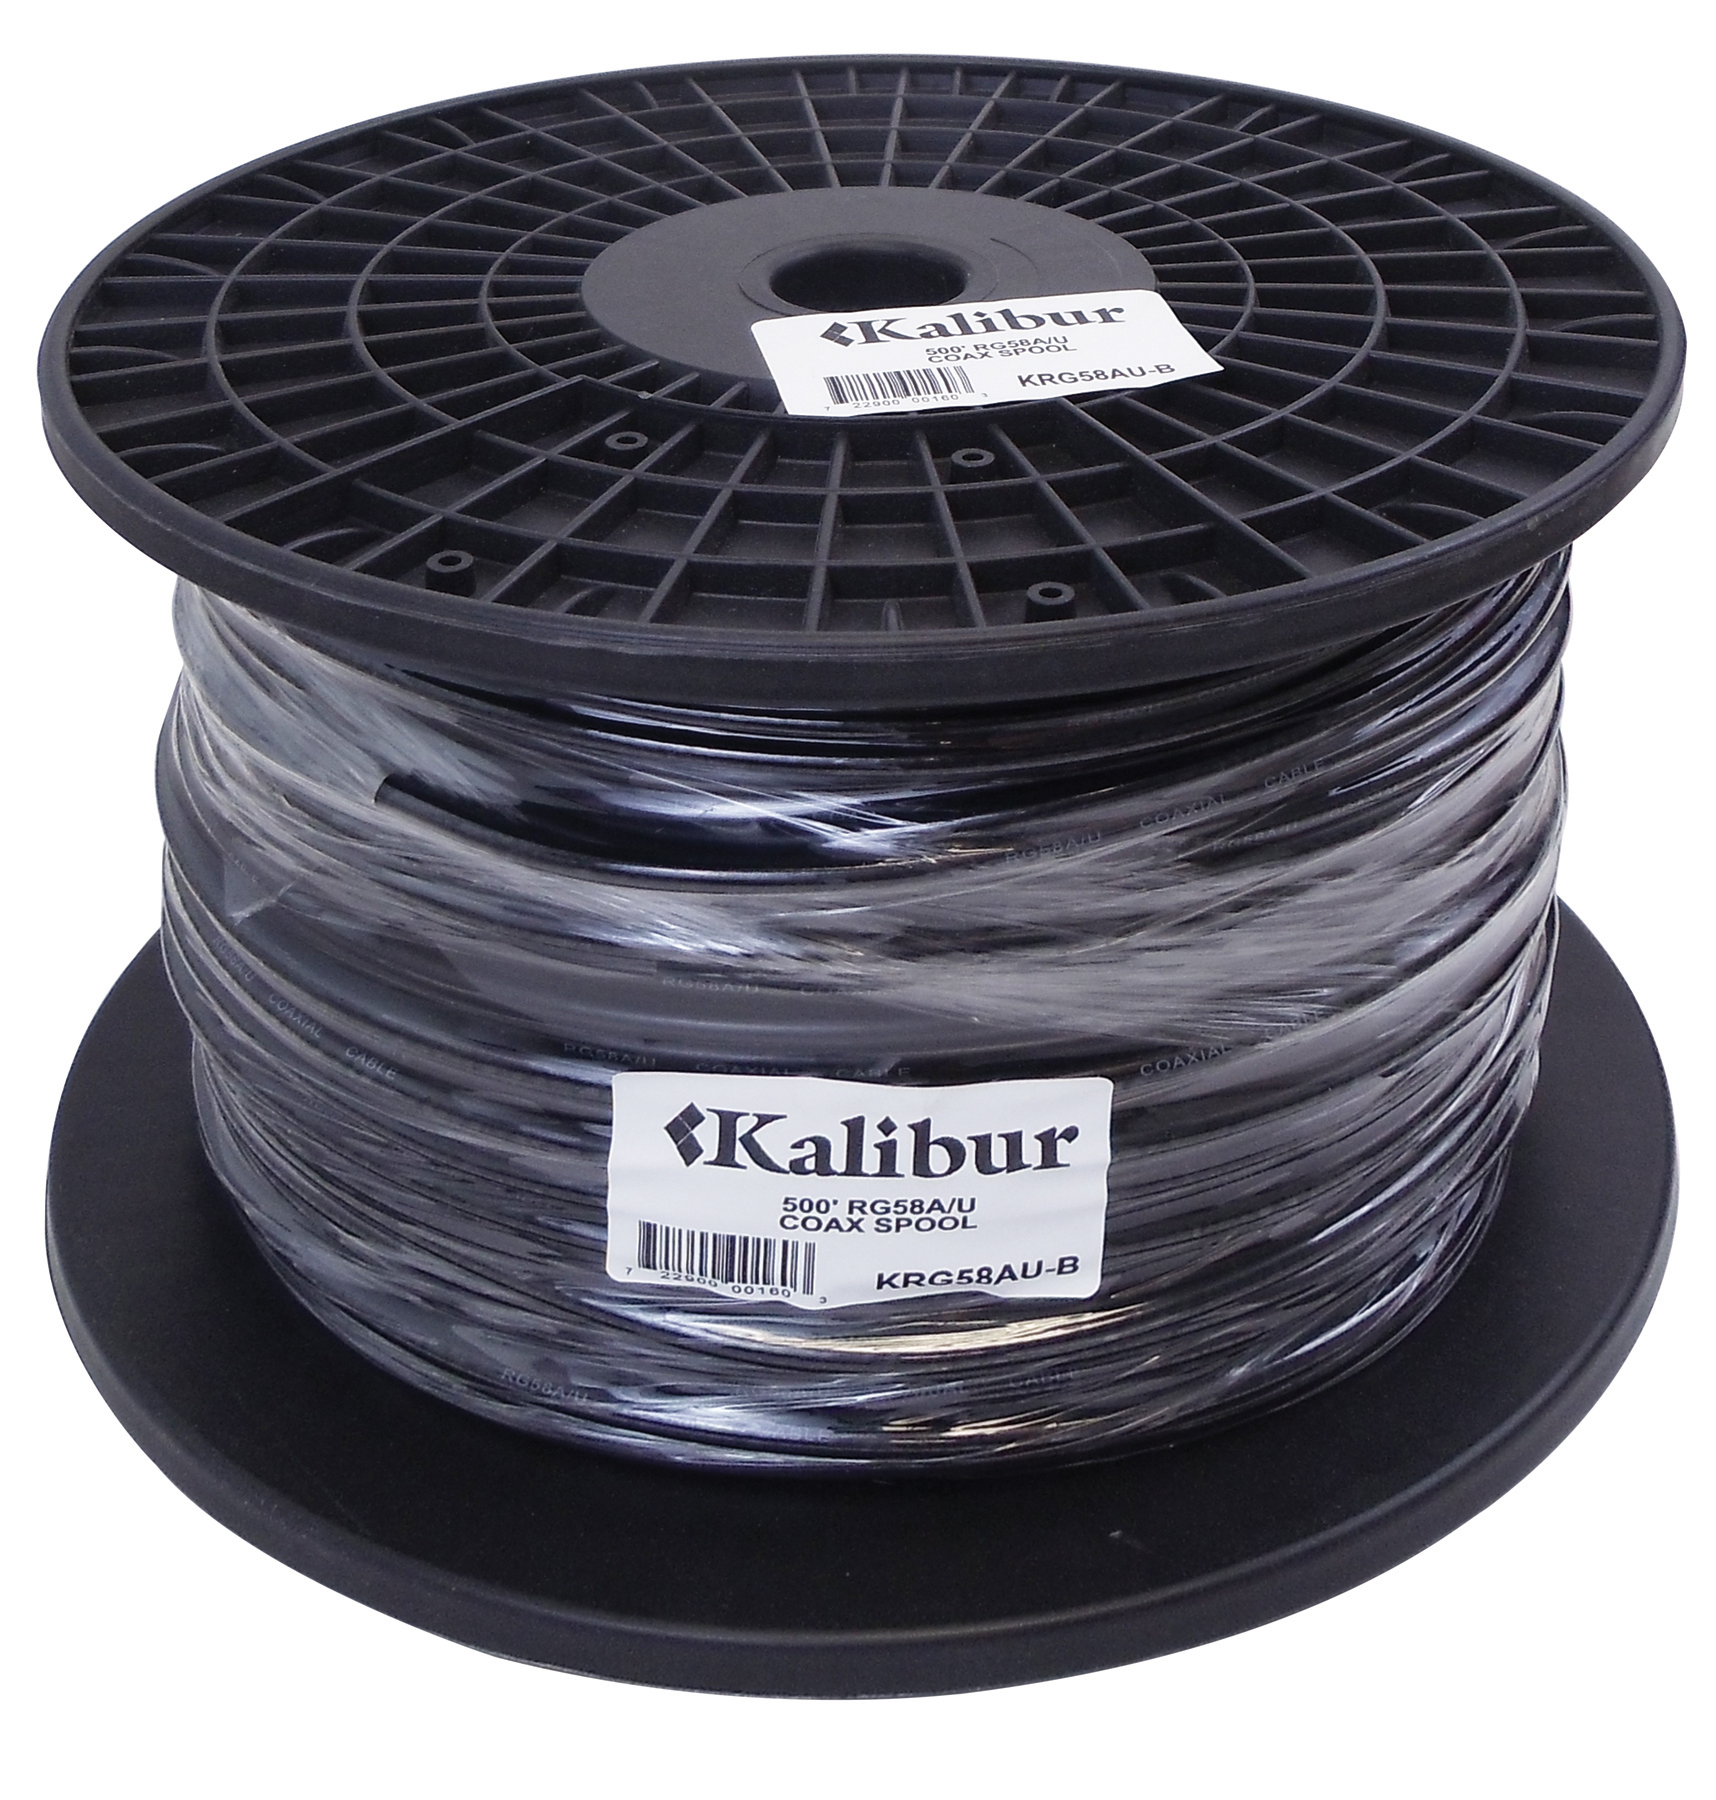 KALIBUR 500 FOOT SPOOL OF BLACK RG58A/U COAX CABLE WITH 95% SHIELD